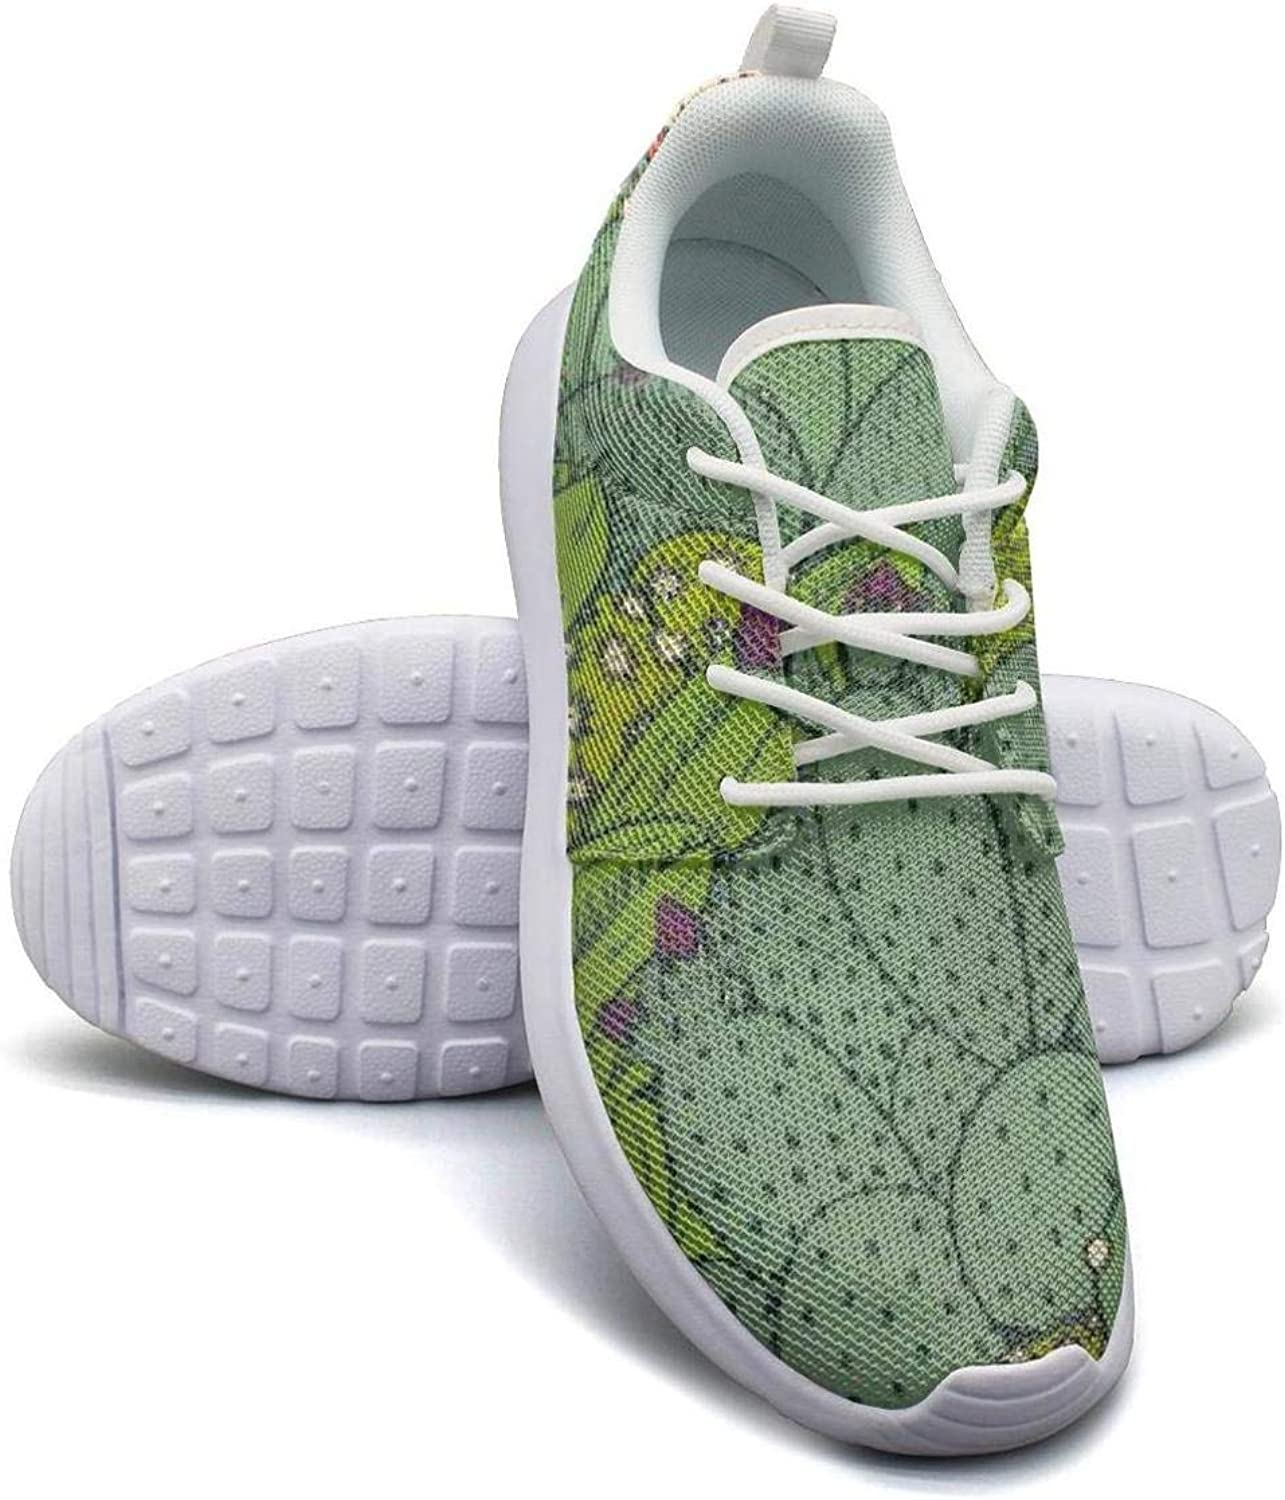 Gjsonmv Cactus Mammillaria Peyote Opuntia mesh Lightweight shoes for Women Non Slip Sports Running Sneakers shoes